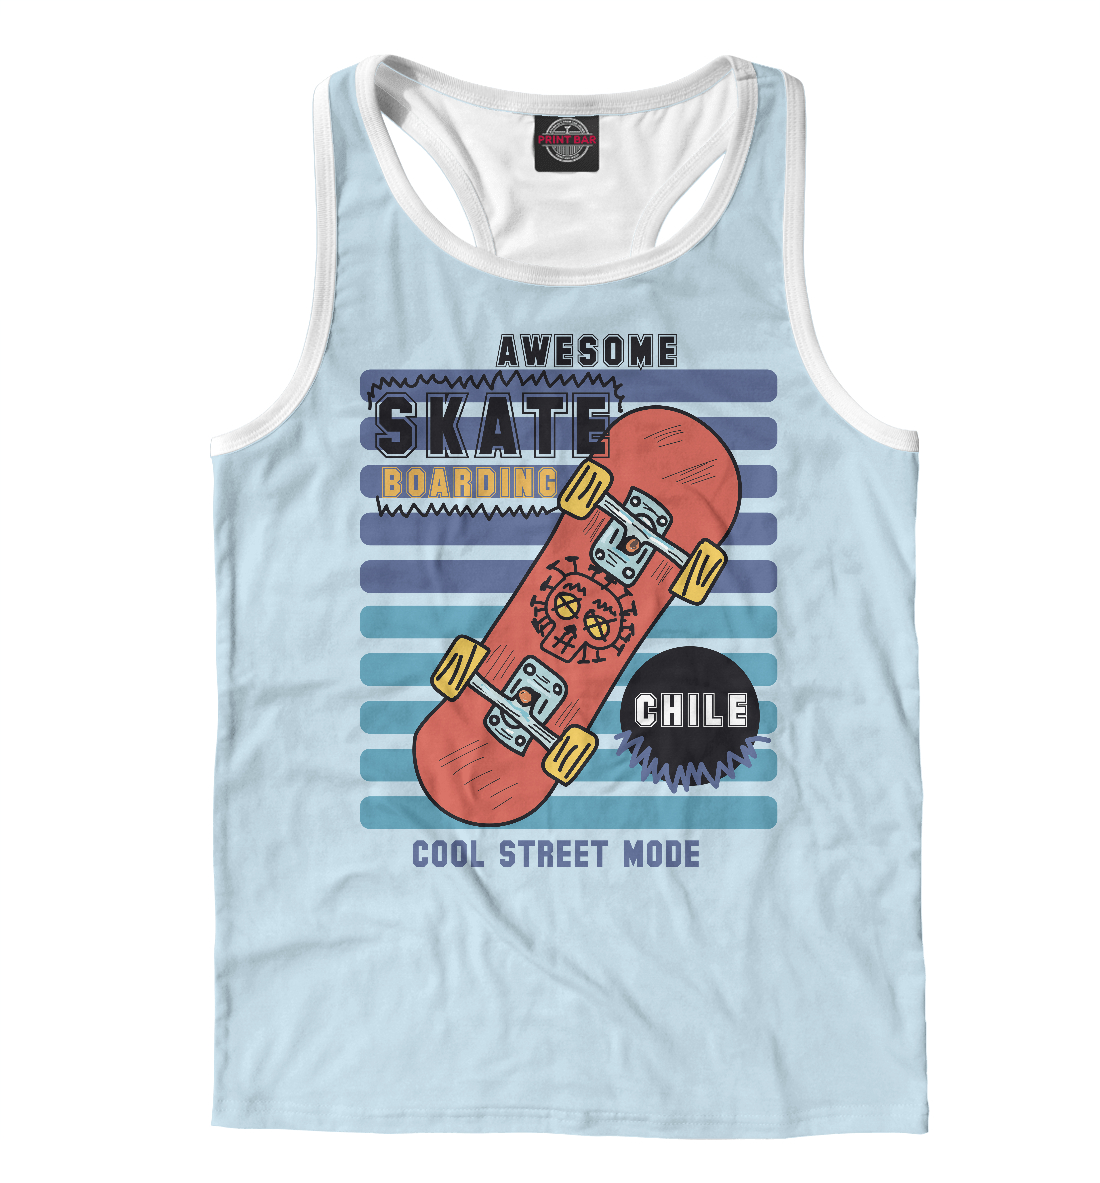 Awesome skate boarding chile vicentico chile